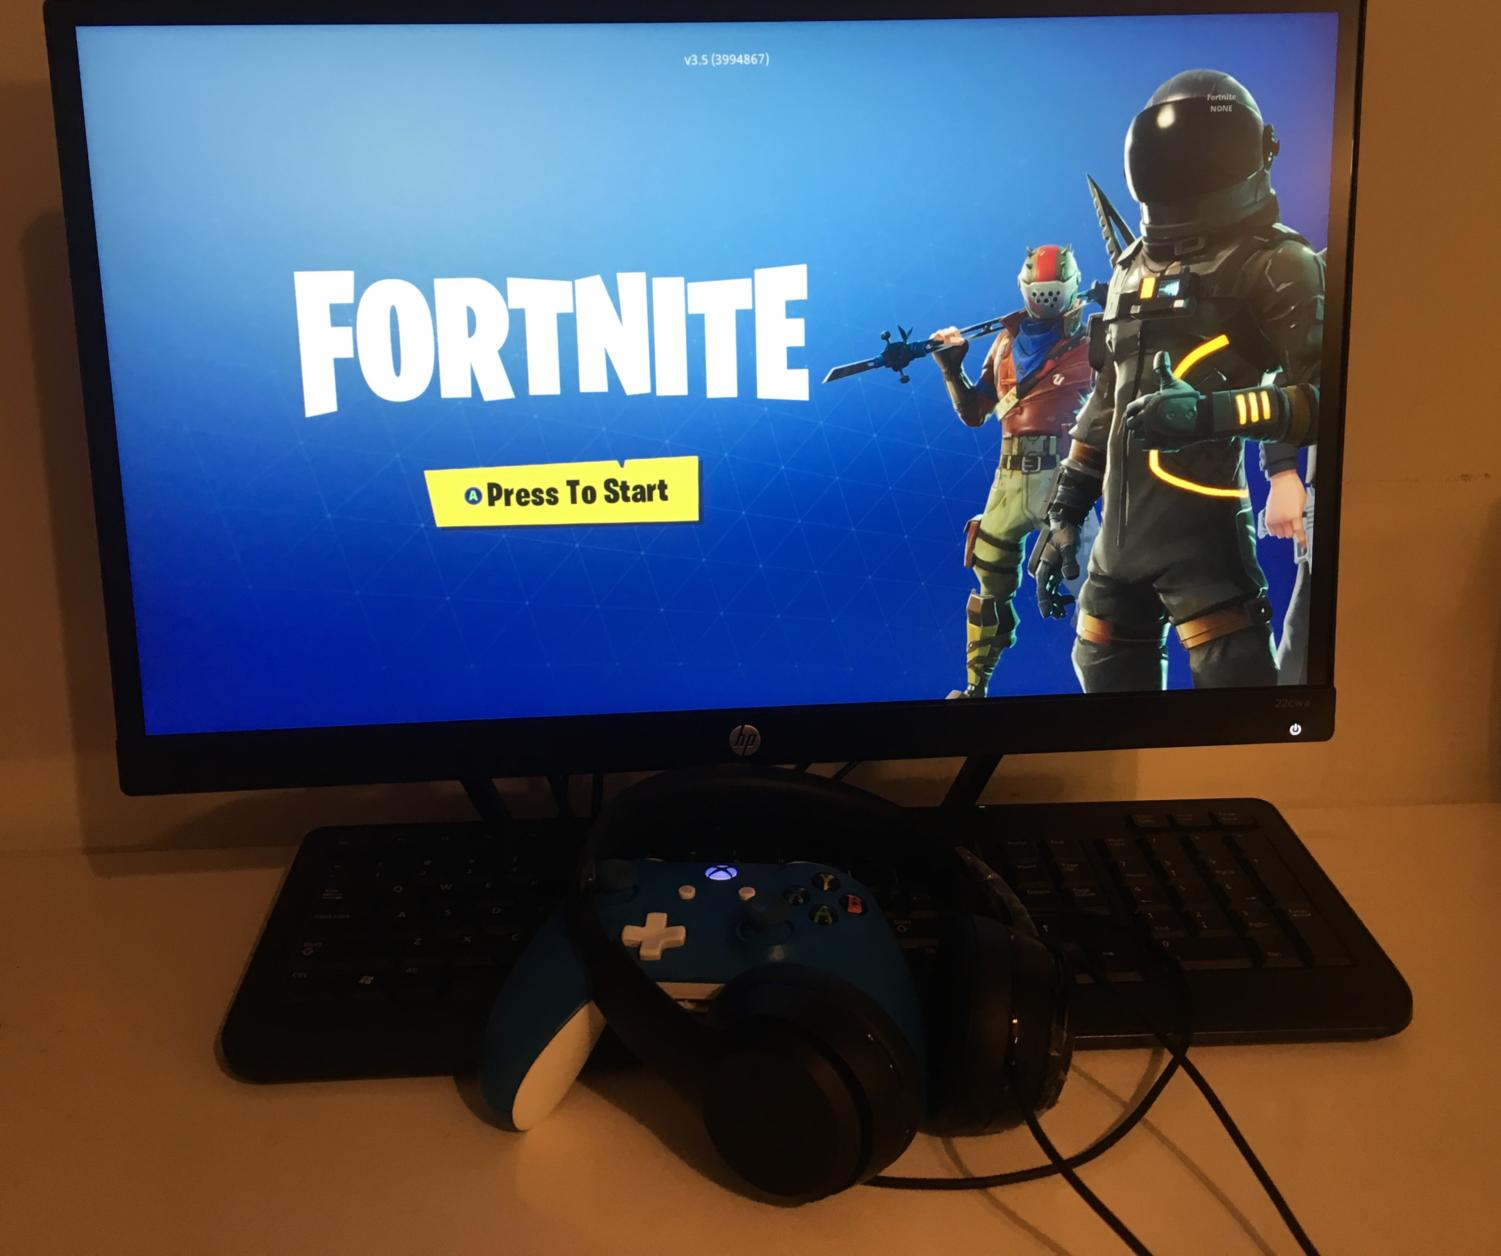 "FORTNITE. Millions of young teenagers are playing the newest game, Fortnite. According to Metro Gaming, there are 3.4 million concurrent players. ""I think I am addicted to Fortnite,"" said Gordy Anaple, 9."